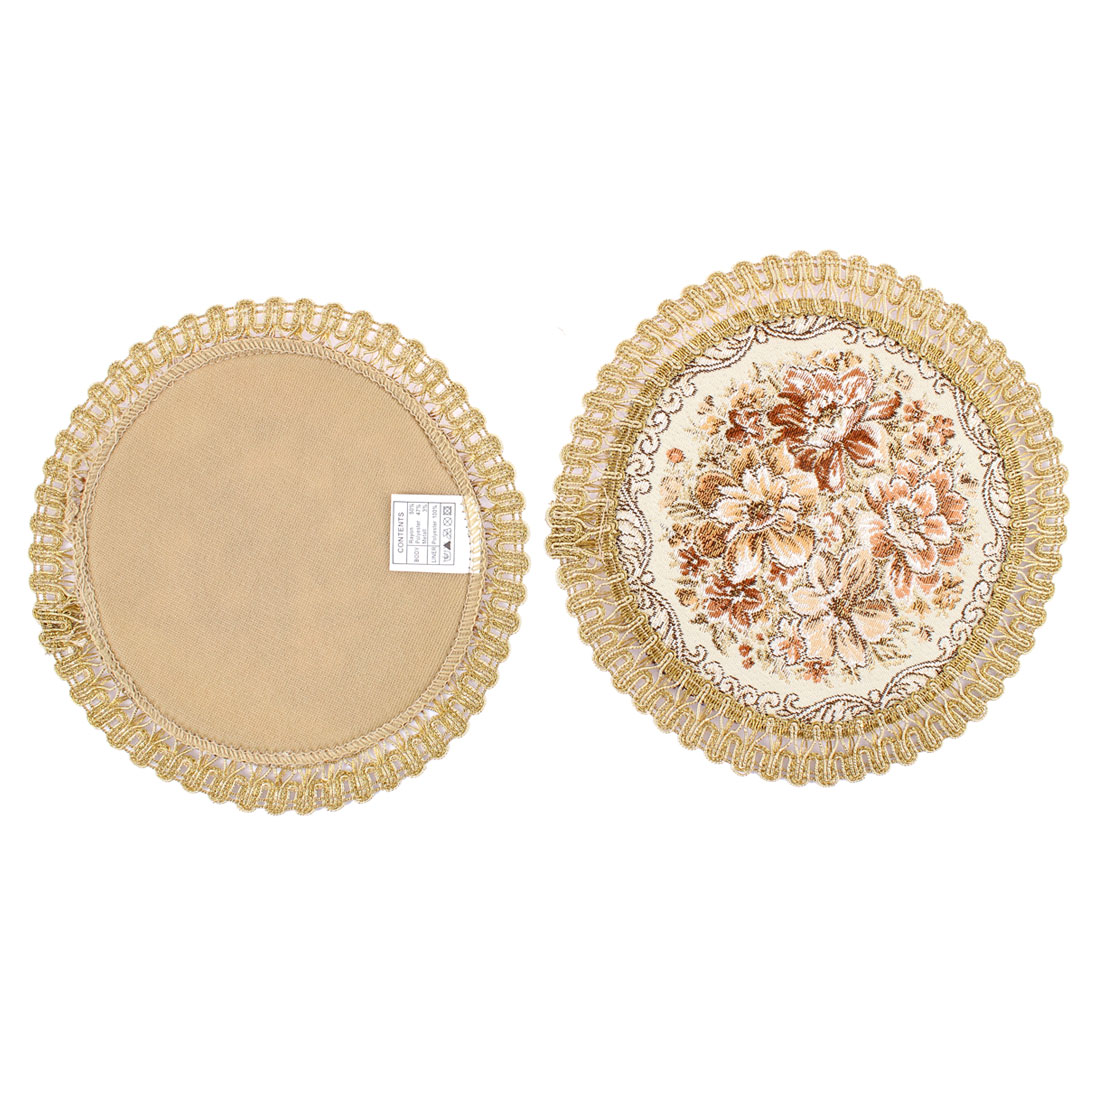 Floral Embroidered Scalloped Edge Table Cup Mat Placemat Coaster 17cm Dia 2pcs